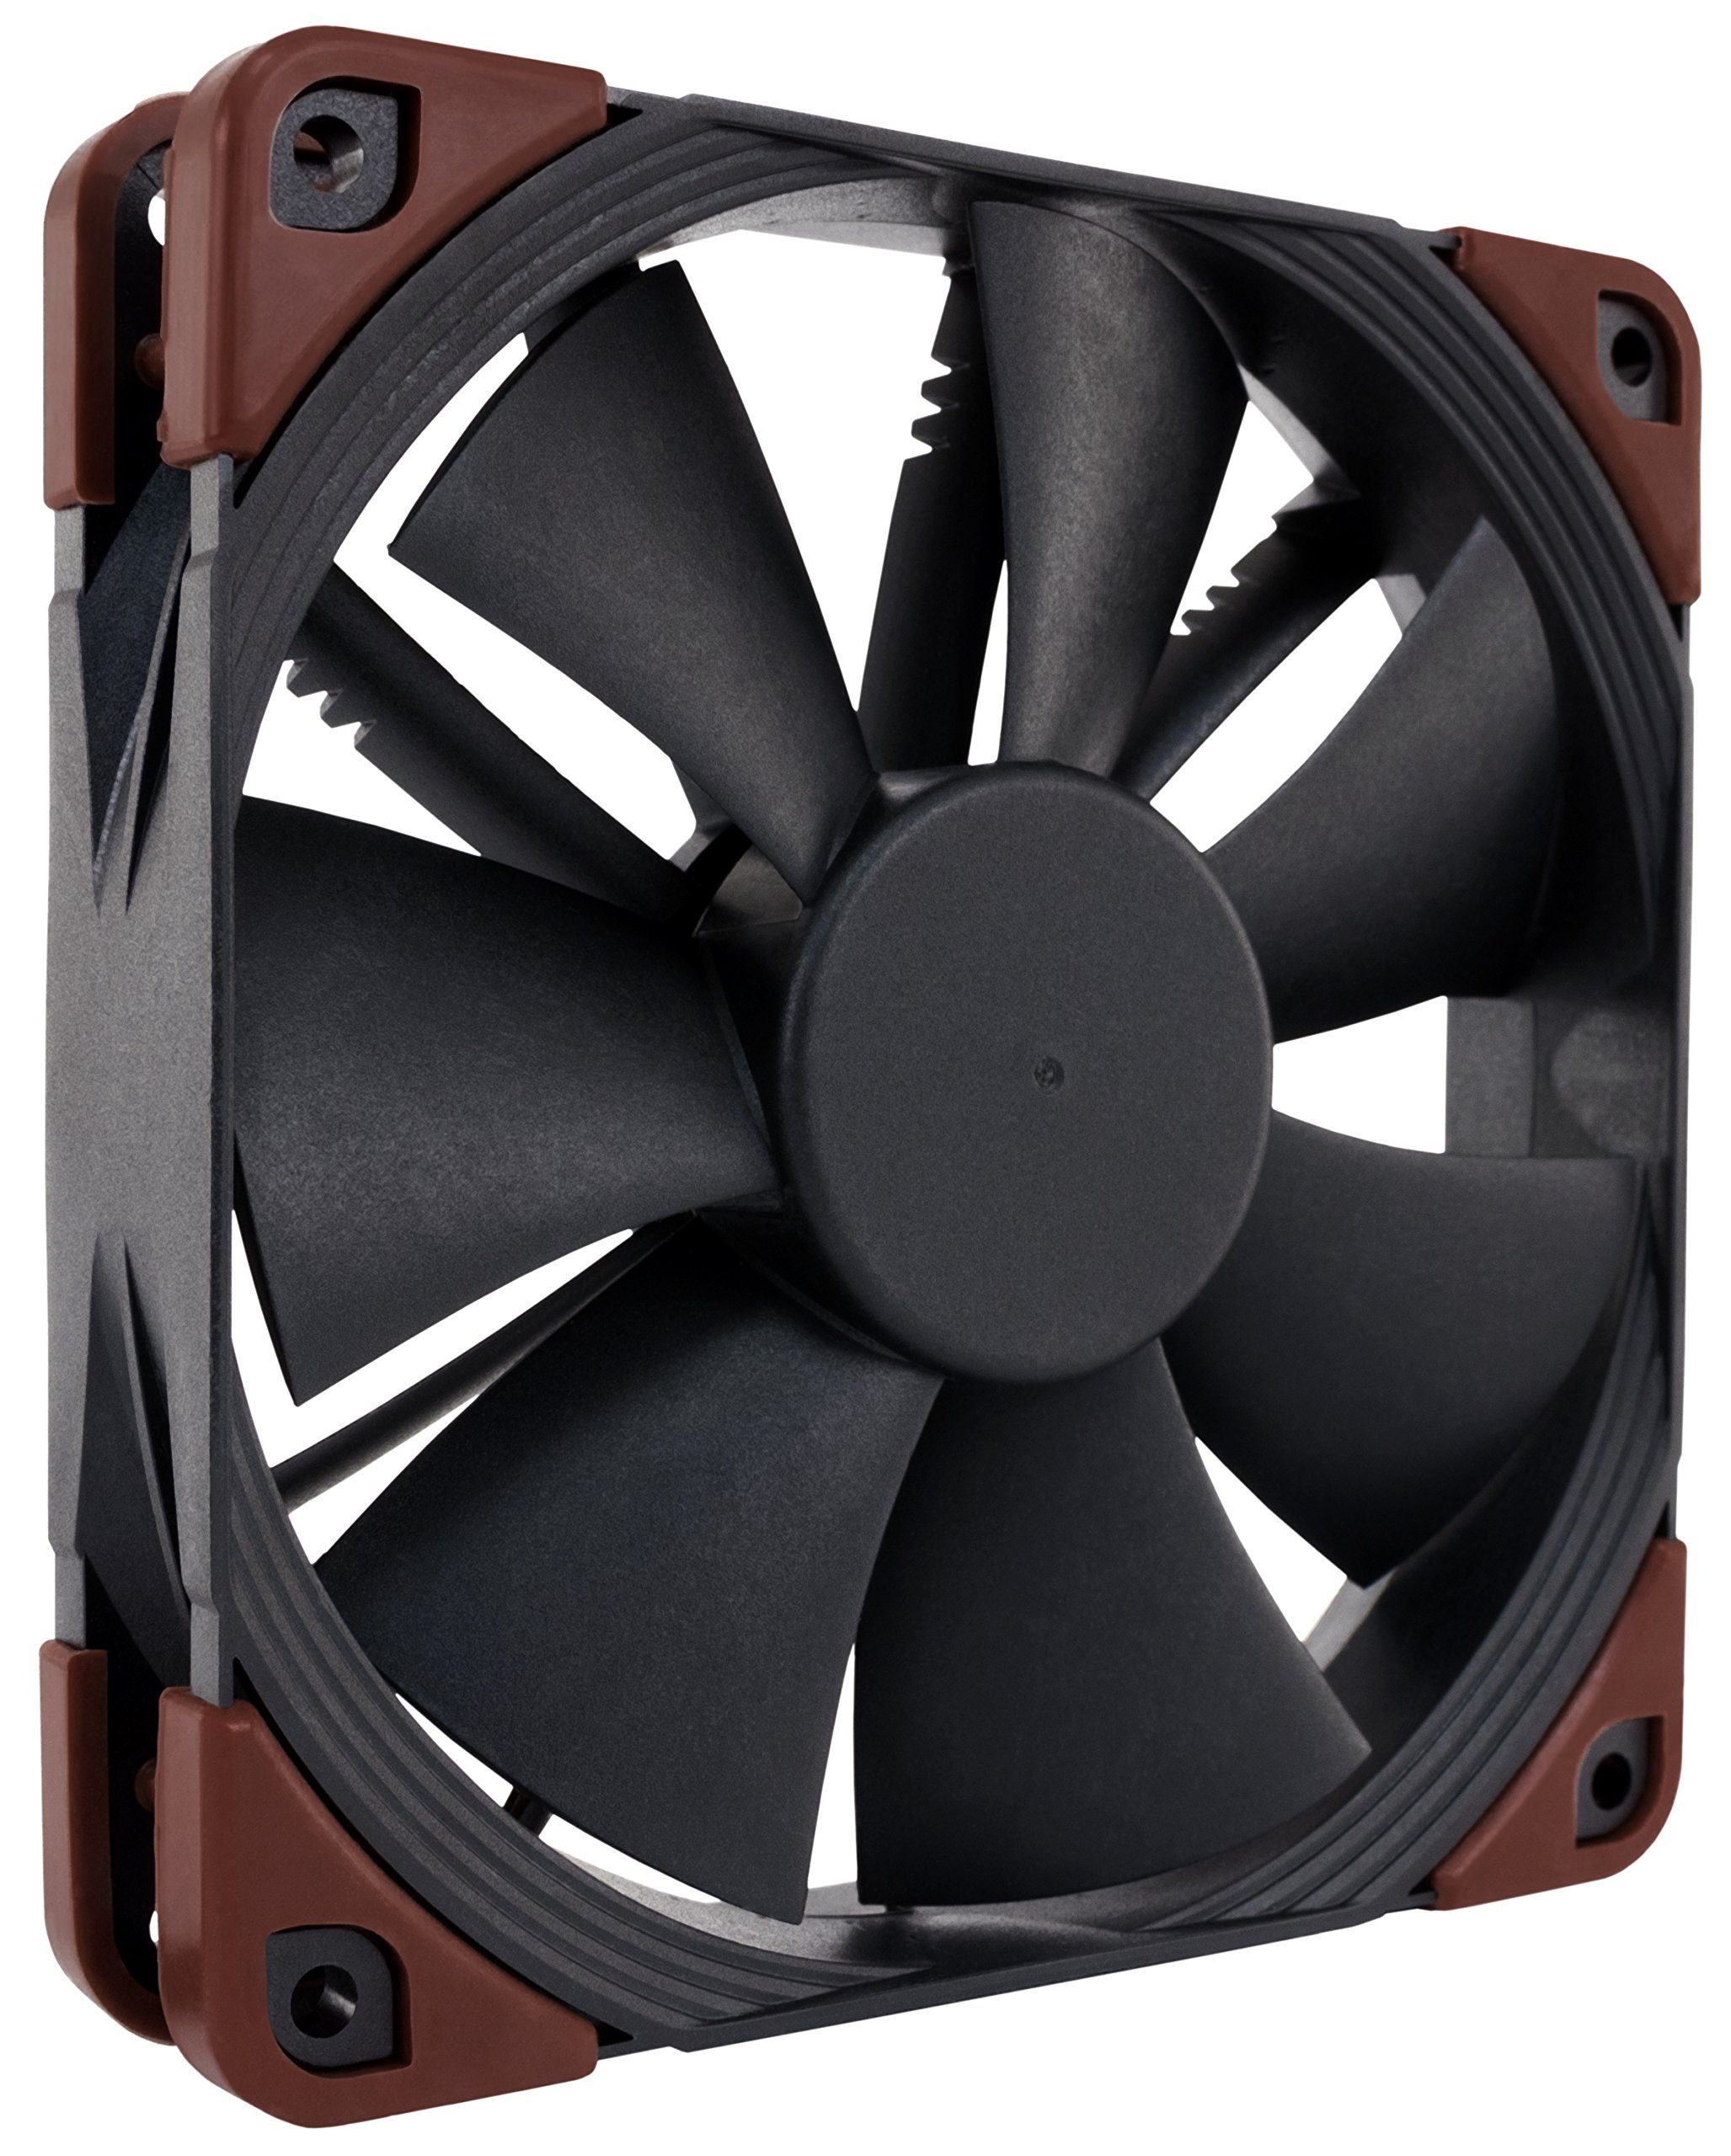 Noctua Fan with Focused Flow and SSO2 Bearing, Retail Cooling NF-F12 iPPC 3000 PWM by noctua (Image #1)